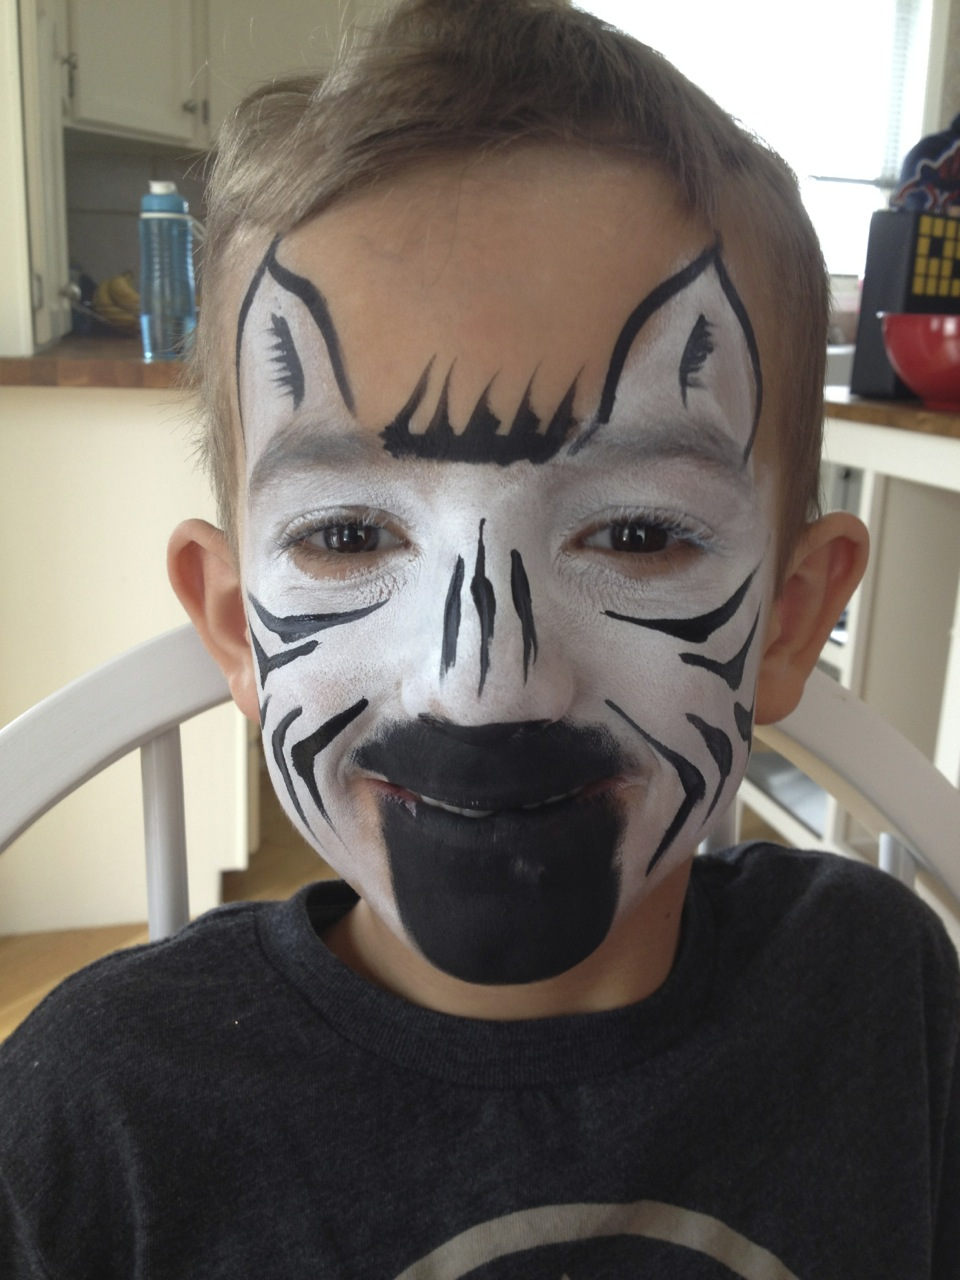 black-white-zebra-fancy-faces-facepainting-calgary-boy-black-muzzle-ears.jpg